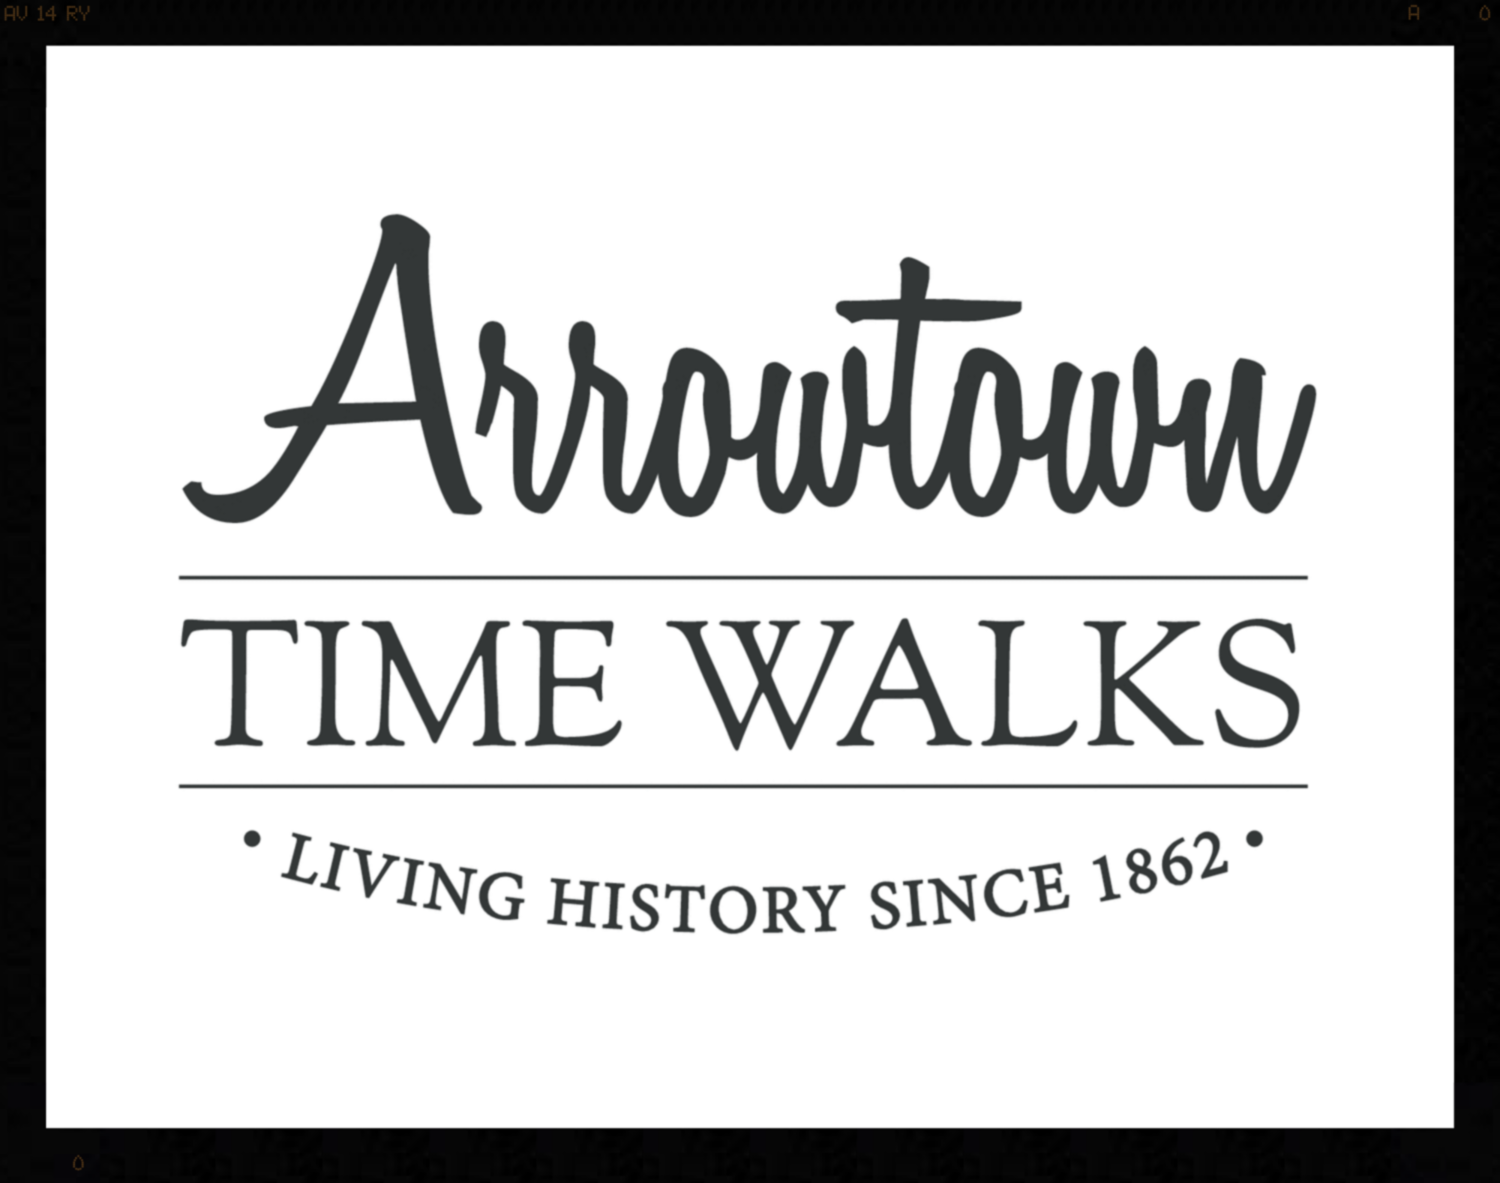 Arrowtown Time Walks